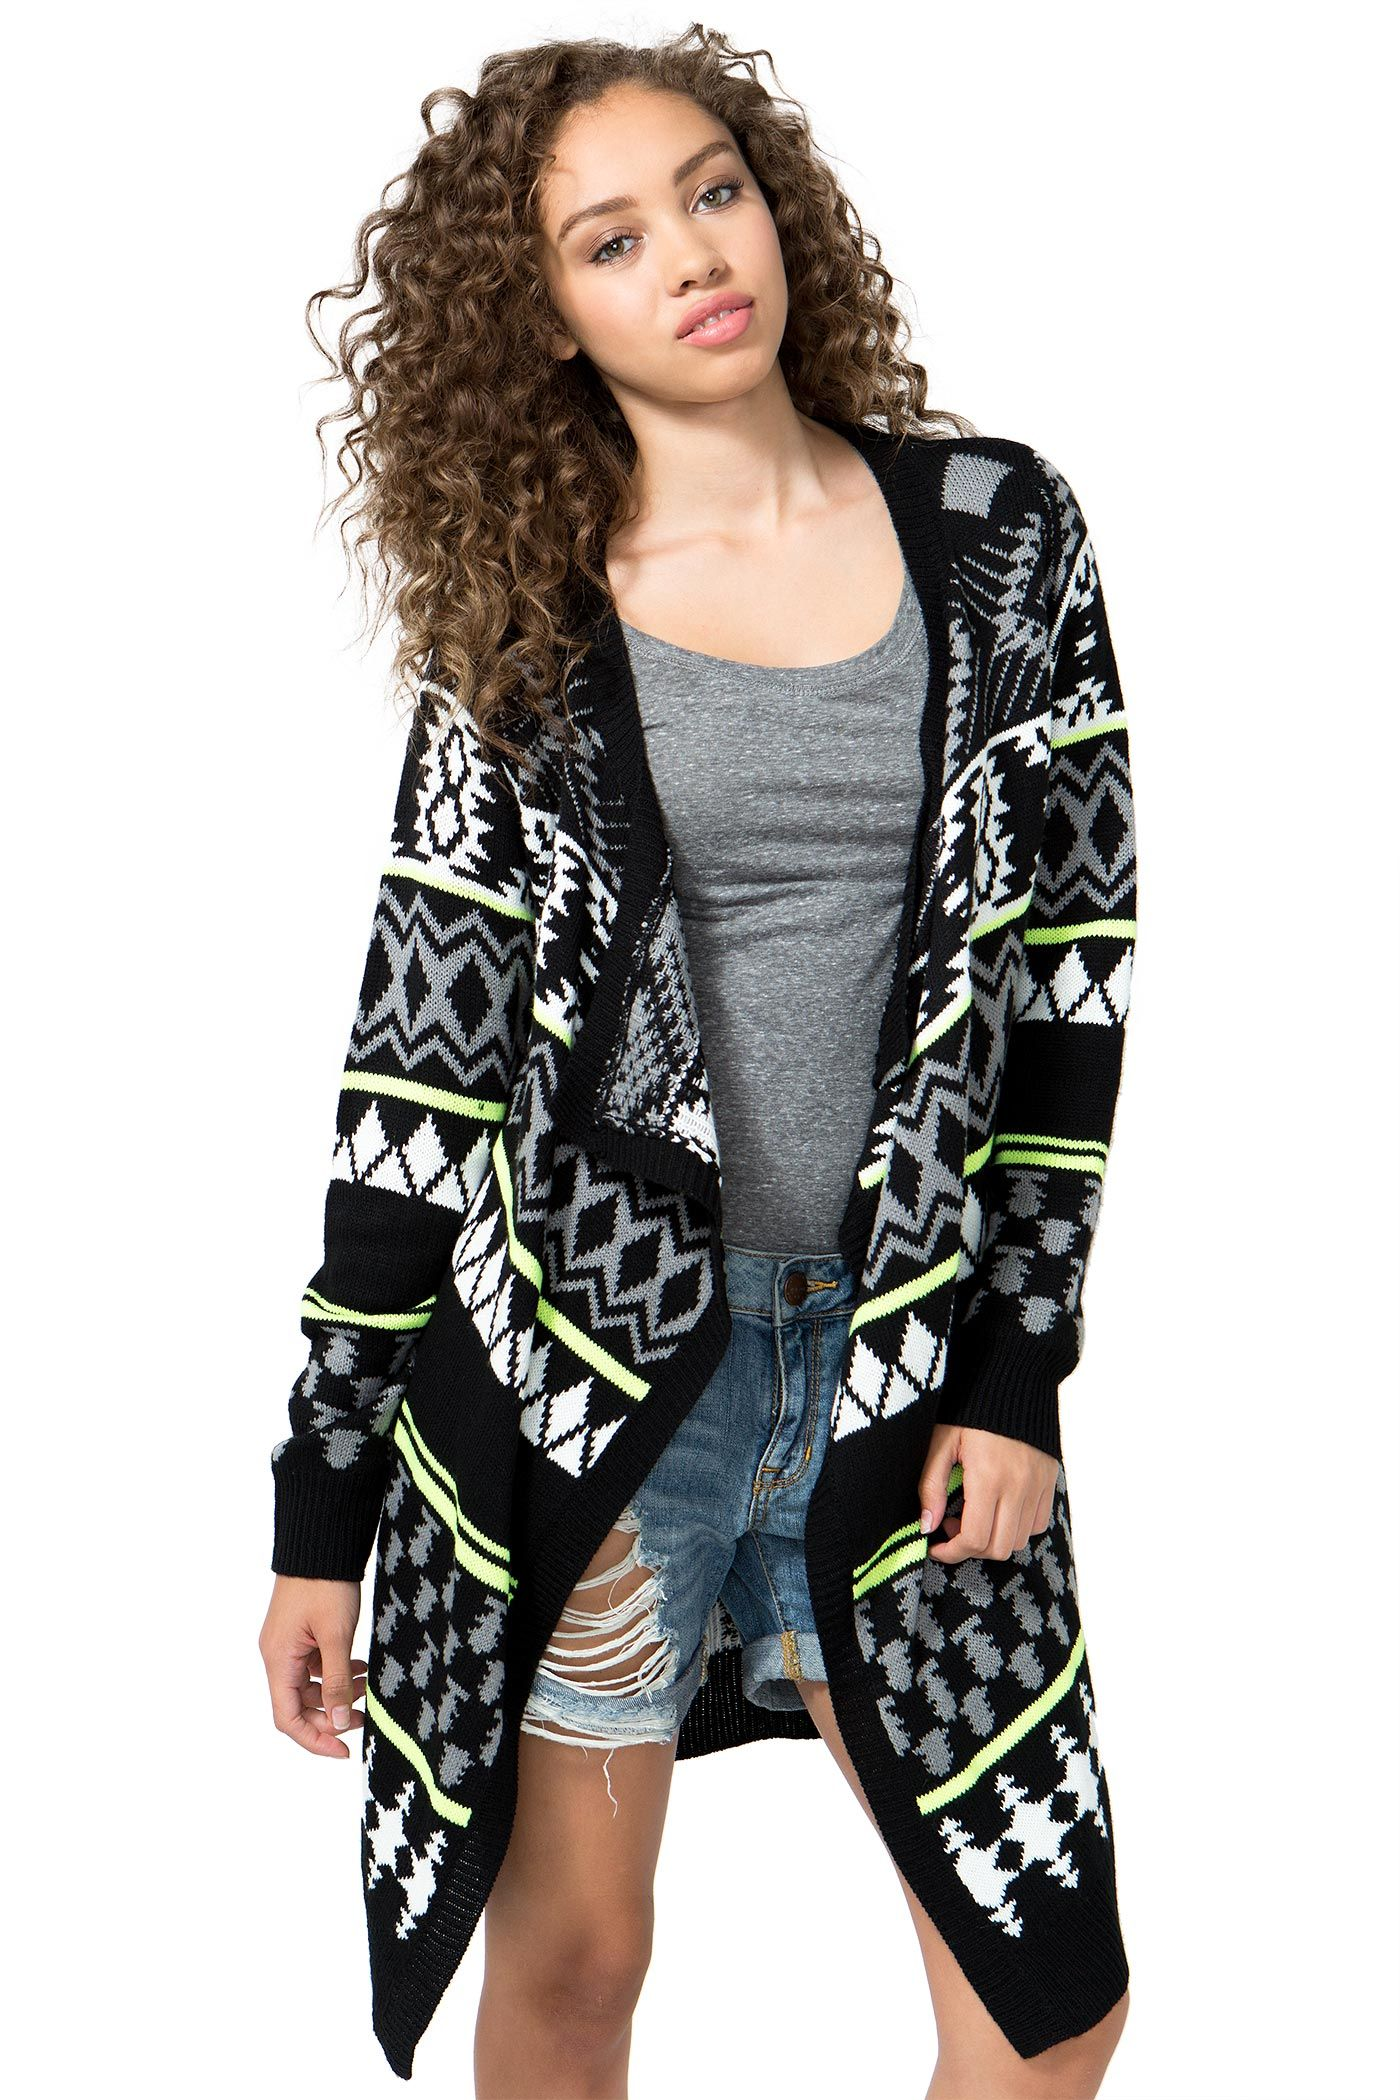 BOUTIQUE FIVE A knit open cardi, featuring a draped front, solid trim, and Nordic-inspired pattern throughout. Neon trim. Pointed longline hem. One size. $39.90